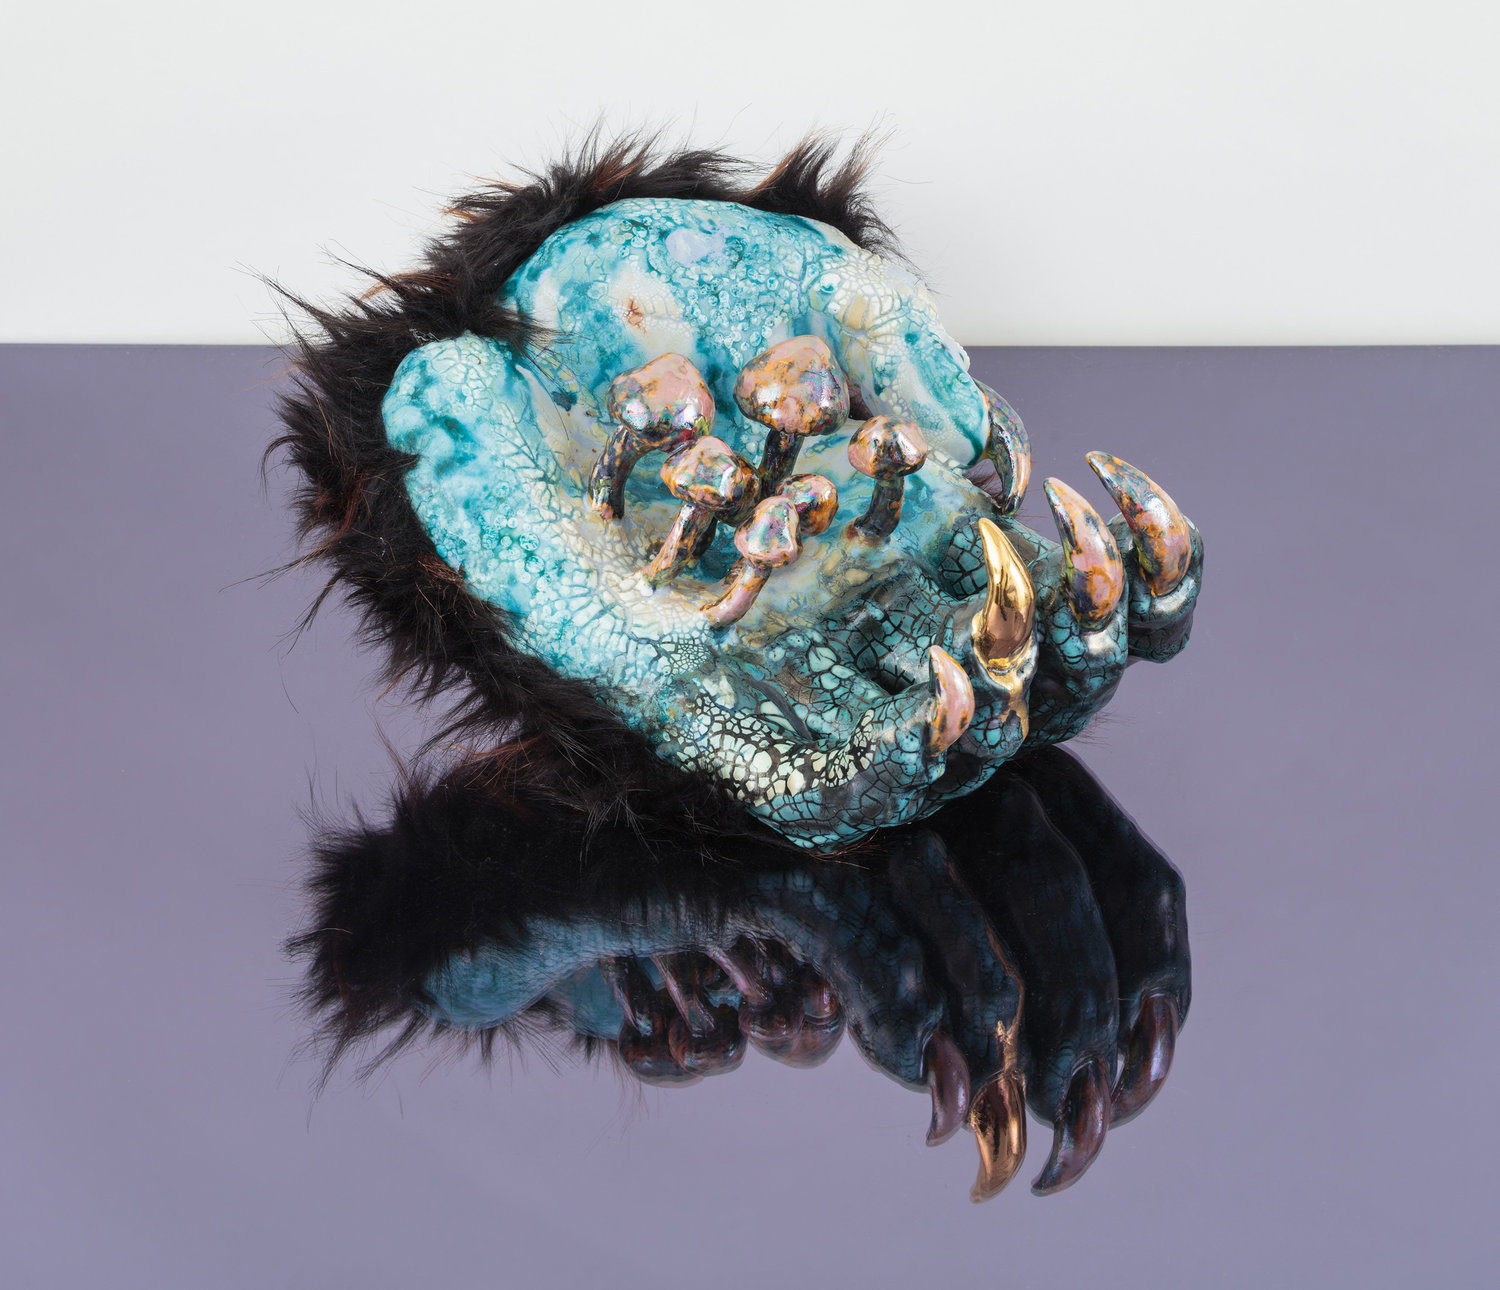 Roxanne Jackson Black Magic, Media: Ceramic, glaze, luster, faux fur, Dimensions: 10 x 6.5 x 6.5 inches, 2018